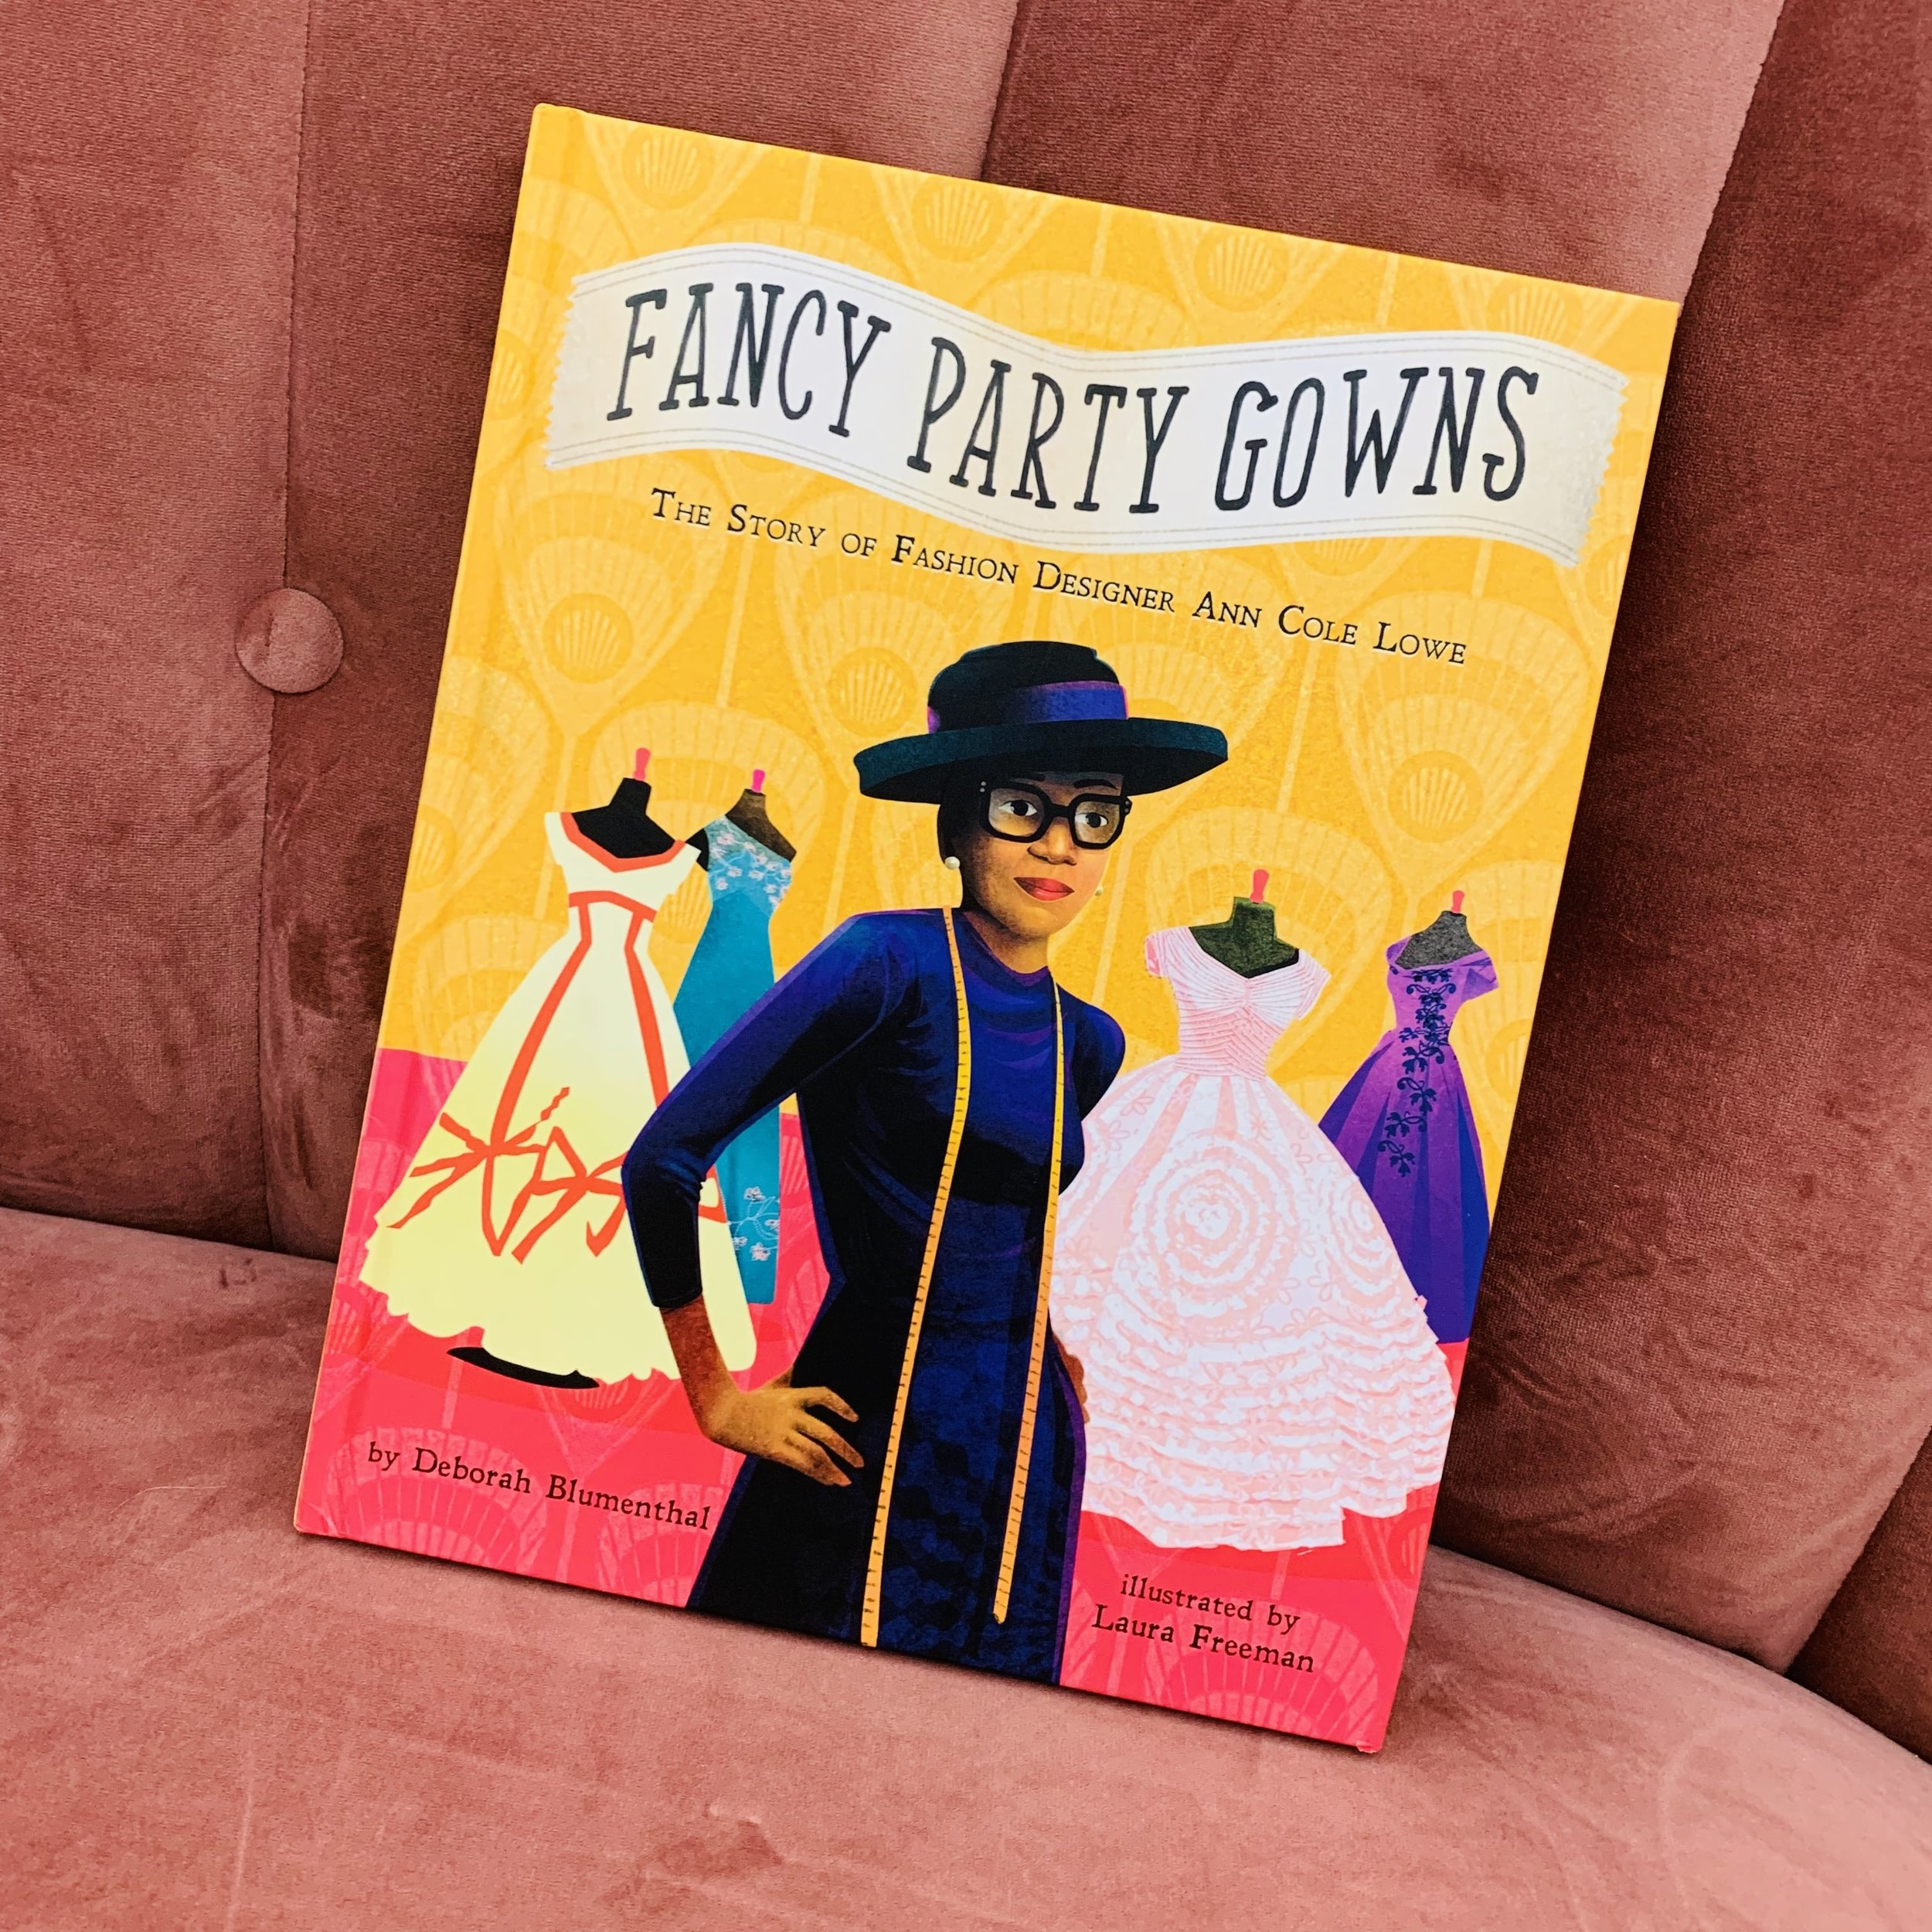 The Story of Fashion Designer Ann Cole Lowe ~ Fancy Party Gowns